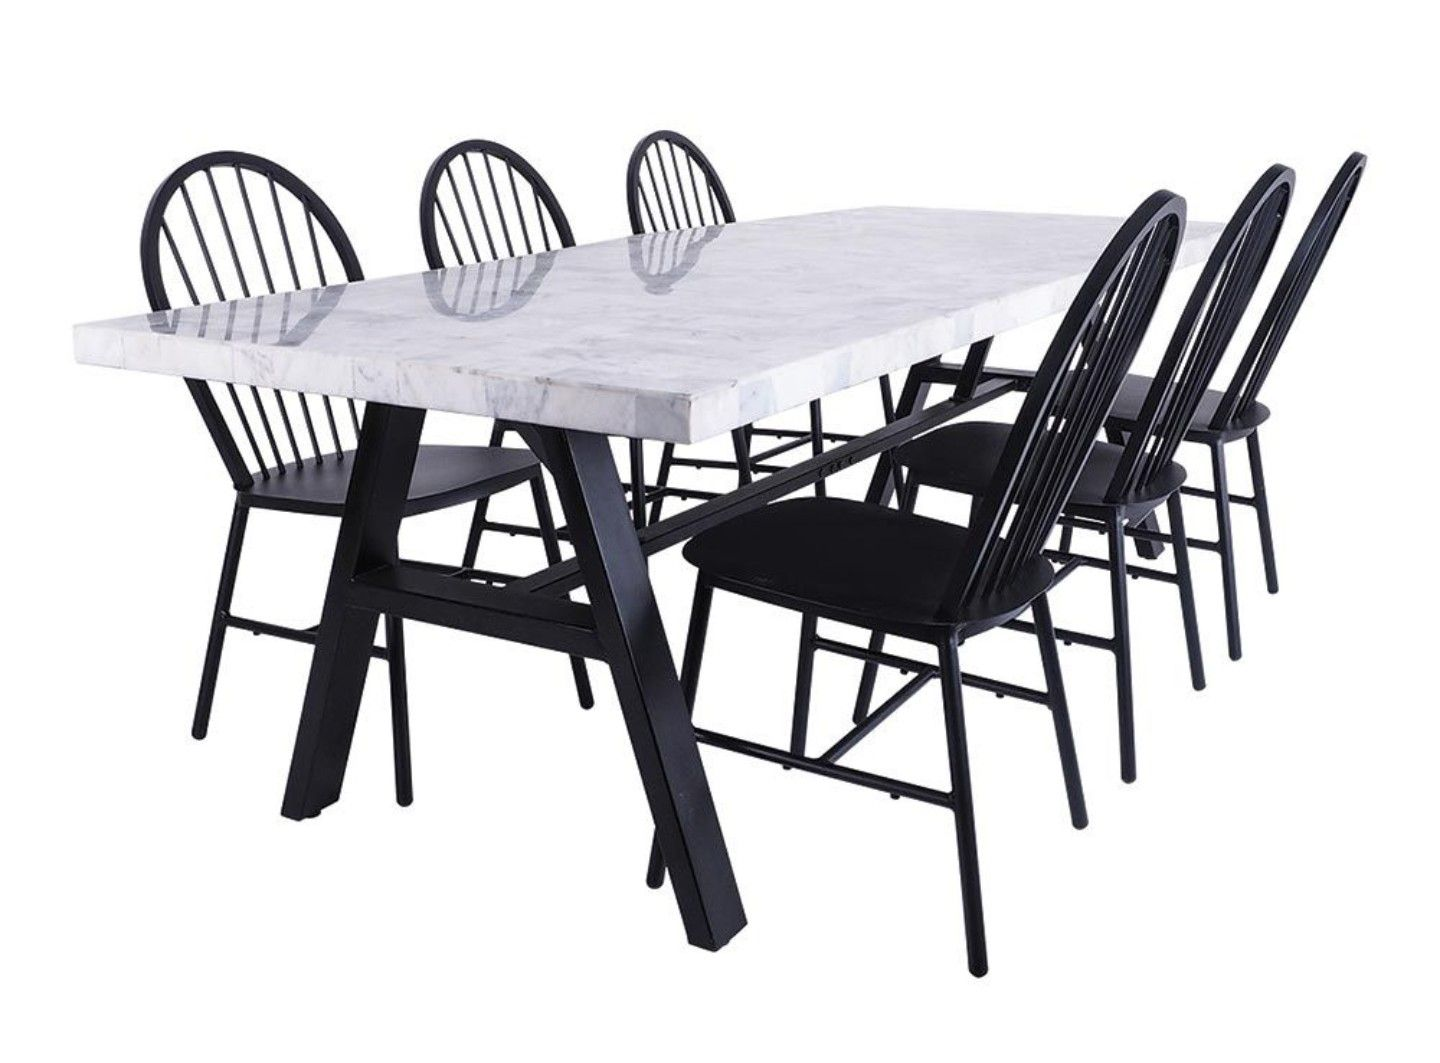 Surprising Marble Inlay 8 Seater Table With Harley Matt Black Aluminium Gamerscity Chair Design For Home Gamerscityorg